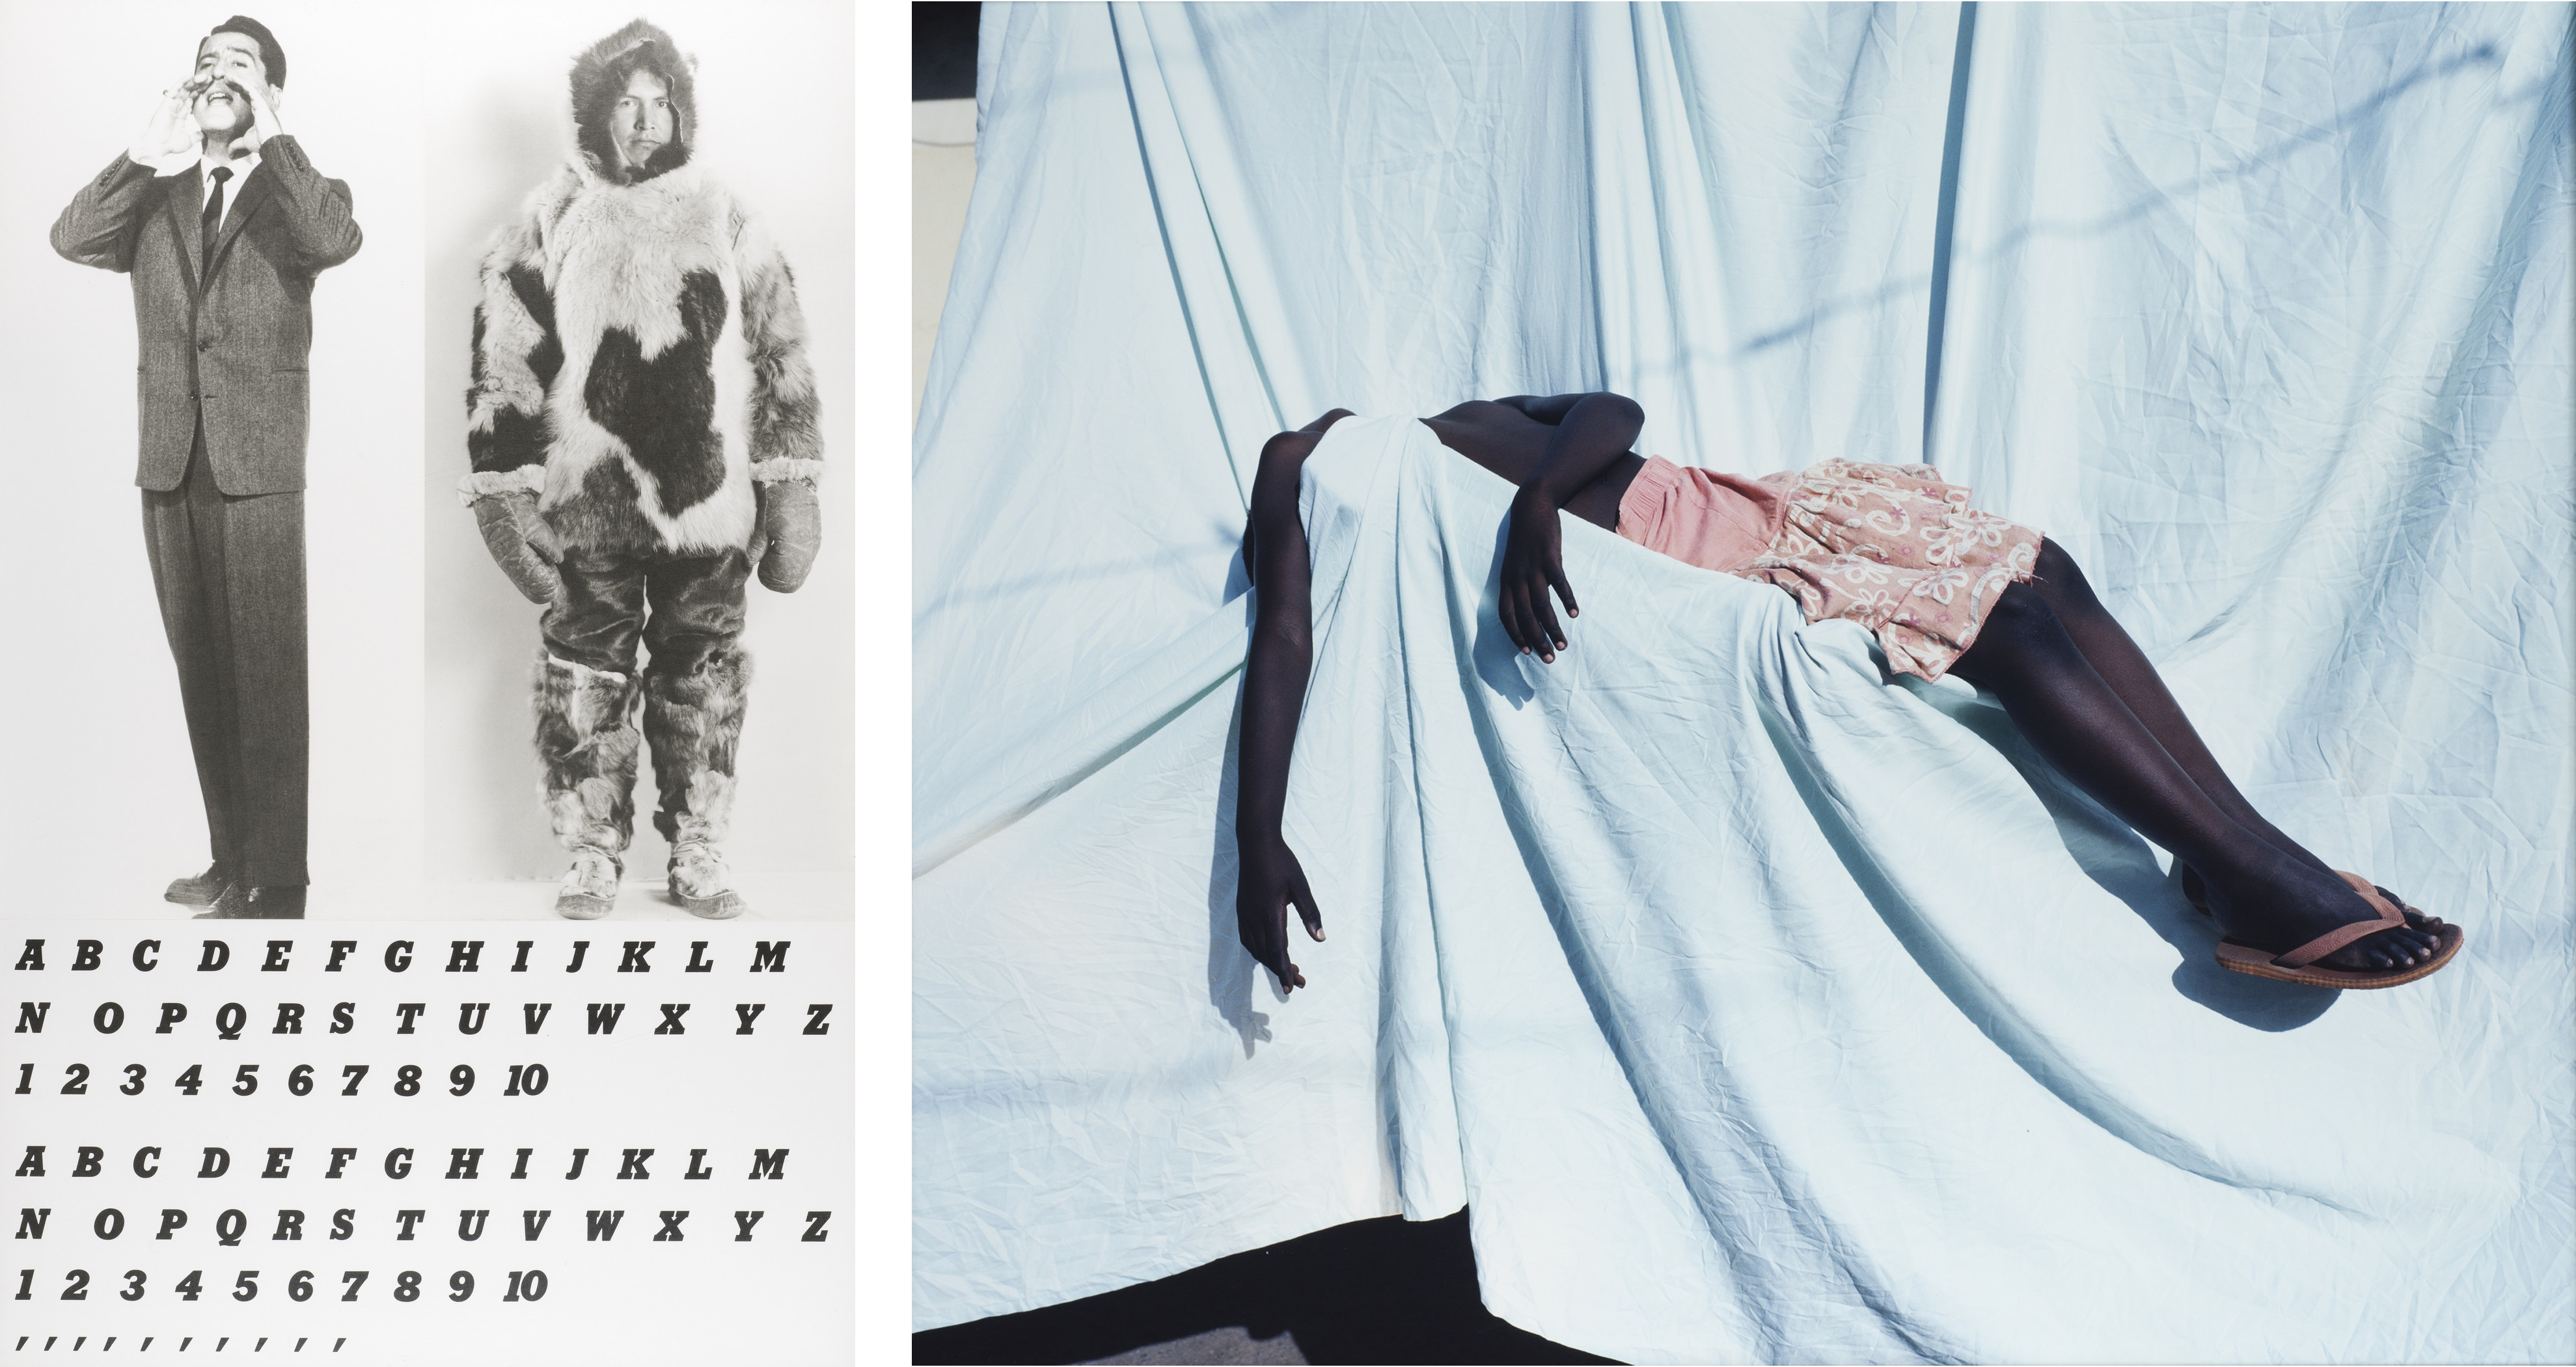 Left: John Baldessari, Two Men with Alphabets, 1984, Los Angeles County Museum of Art, gift of Judy and Stuart Spence, © John Baldessari, digital image © Museum Associates/LACMA; Right: Viviane Sassen, Belladonna, 2010, printed 2011, Los Angeles County Museum of Art, purchased with funds provided by the Ralph M. Parsons Fund and the Photographic Arts Council, 2011, photo © Museum Associates/LACMA